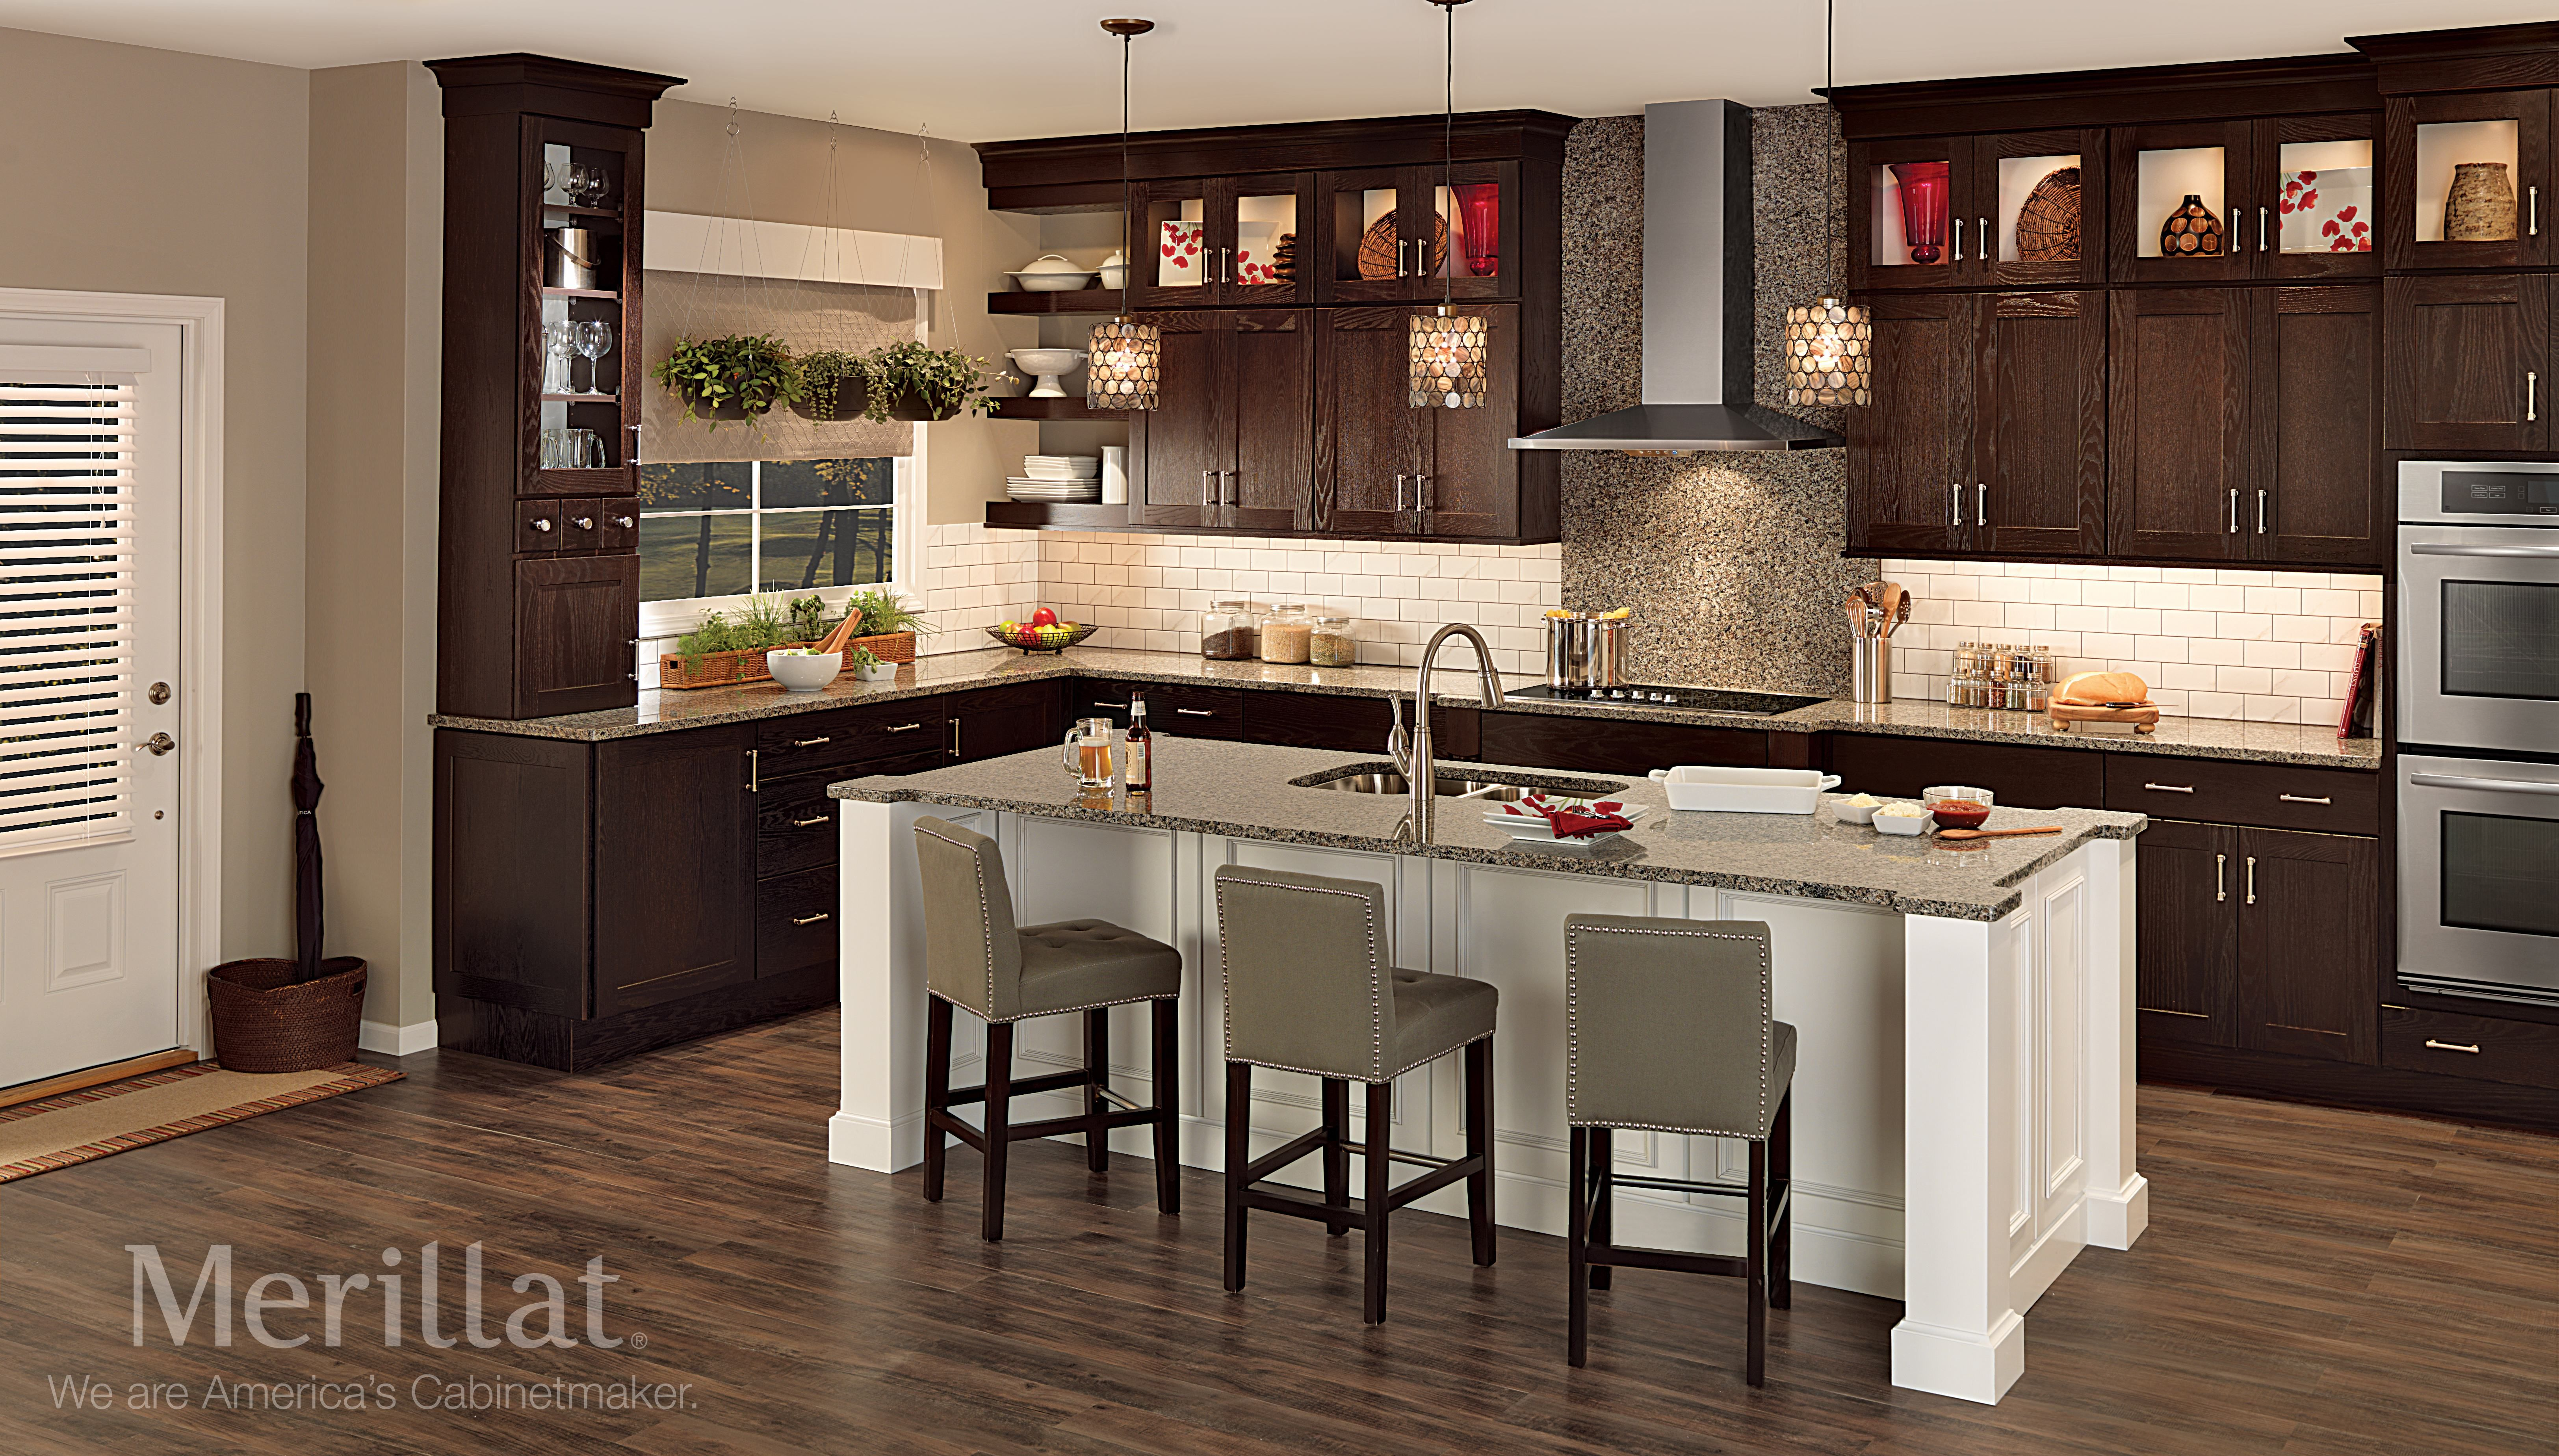 Merillat Classic Cannonsburg Maple Cotton With Tuscan Glaze Island And Tolani Oak Kona Walls Meri 1940s Kitchen Merillat Kitchen Cabinets Kitchen Design